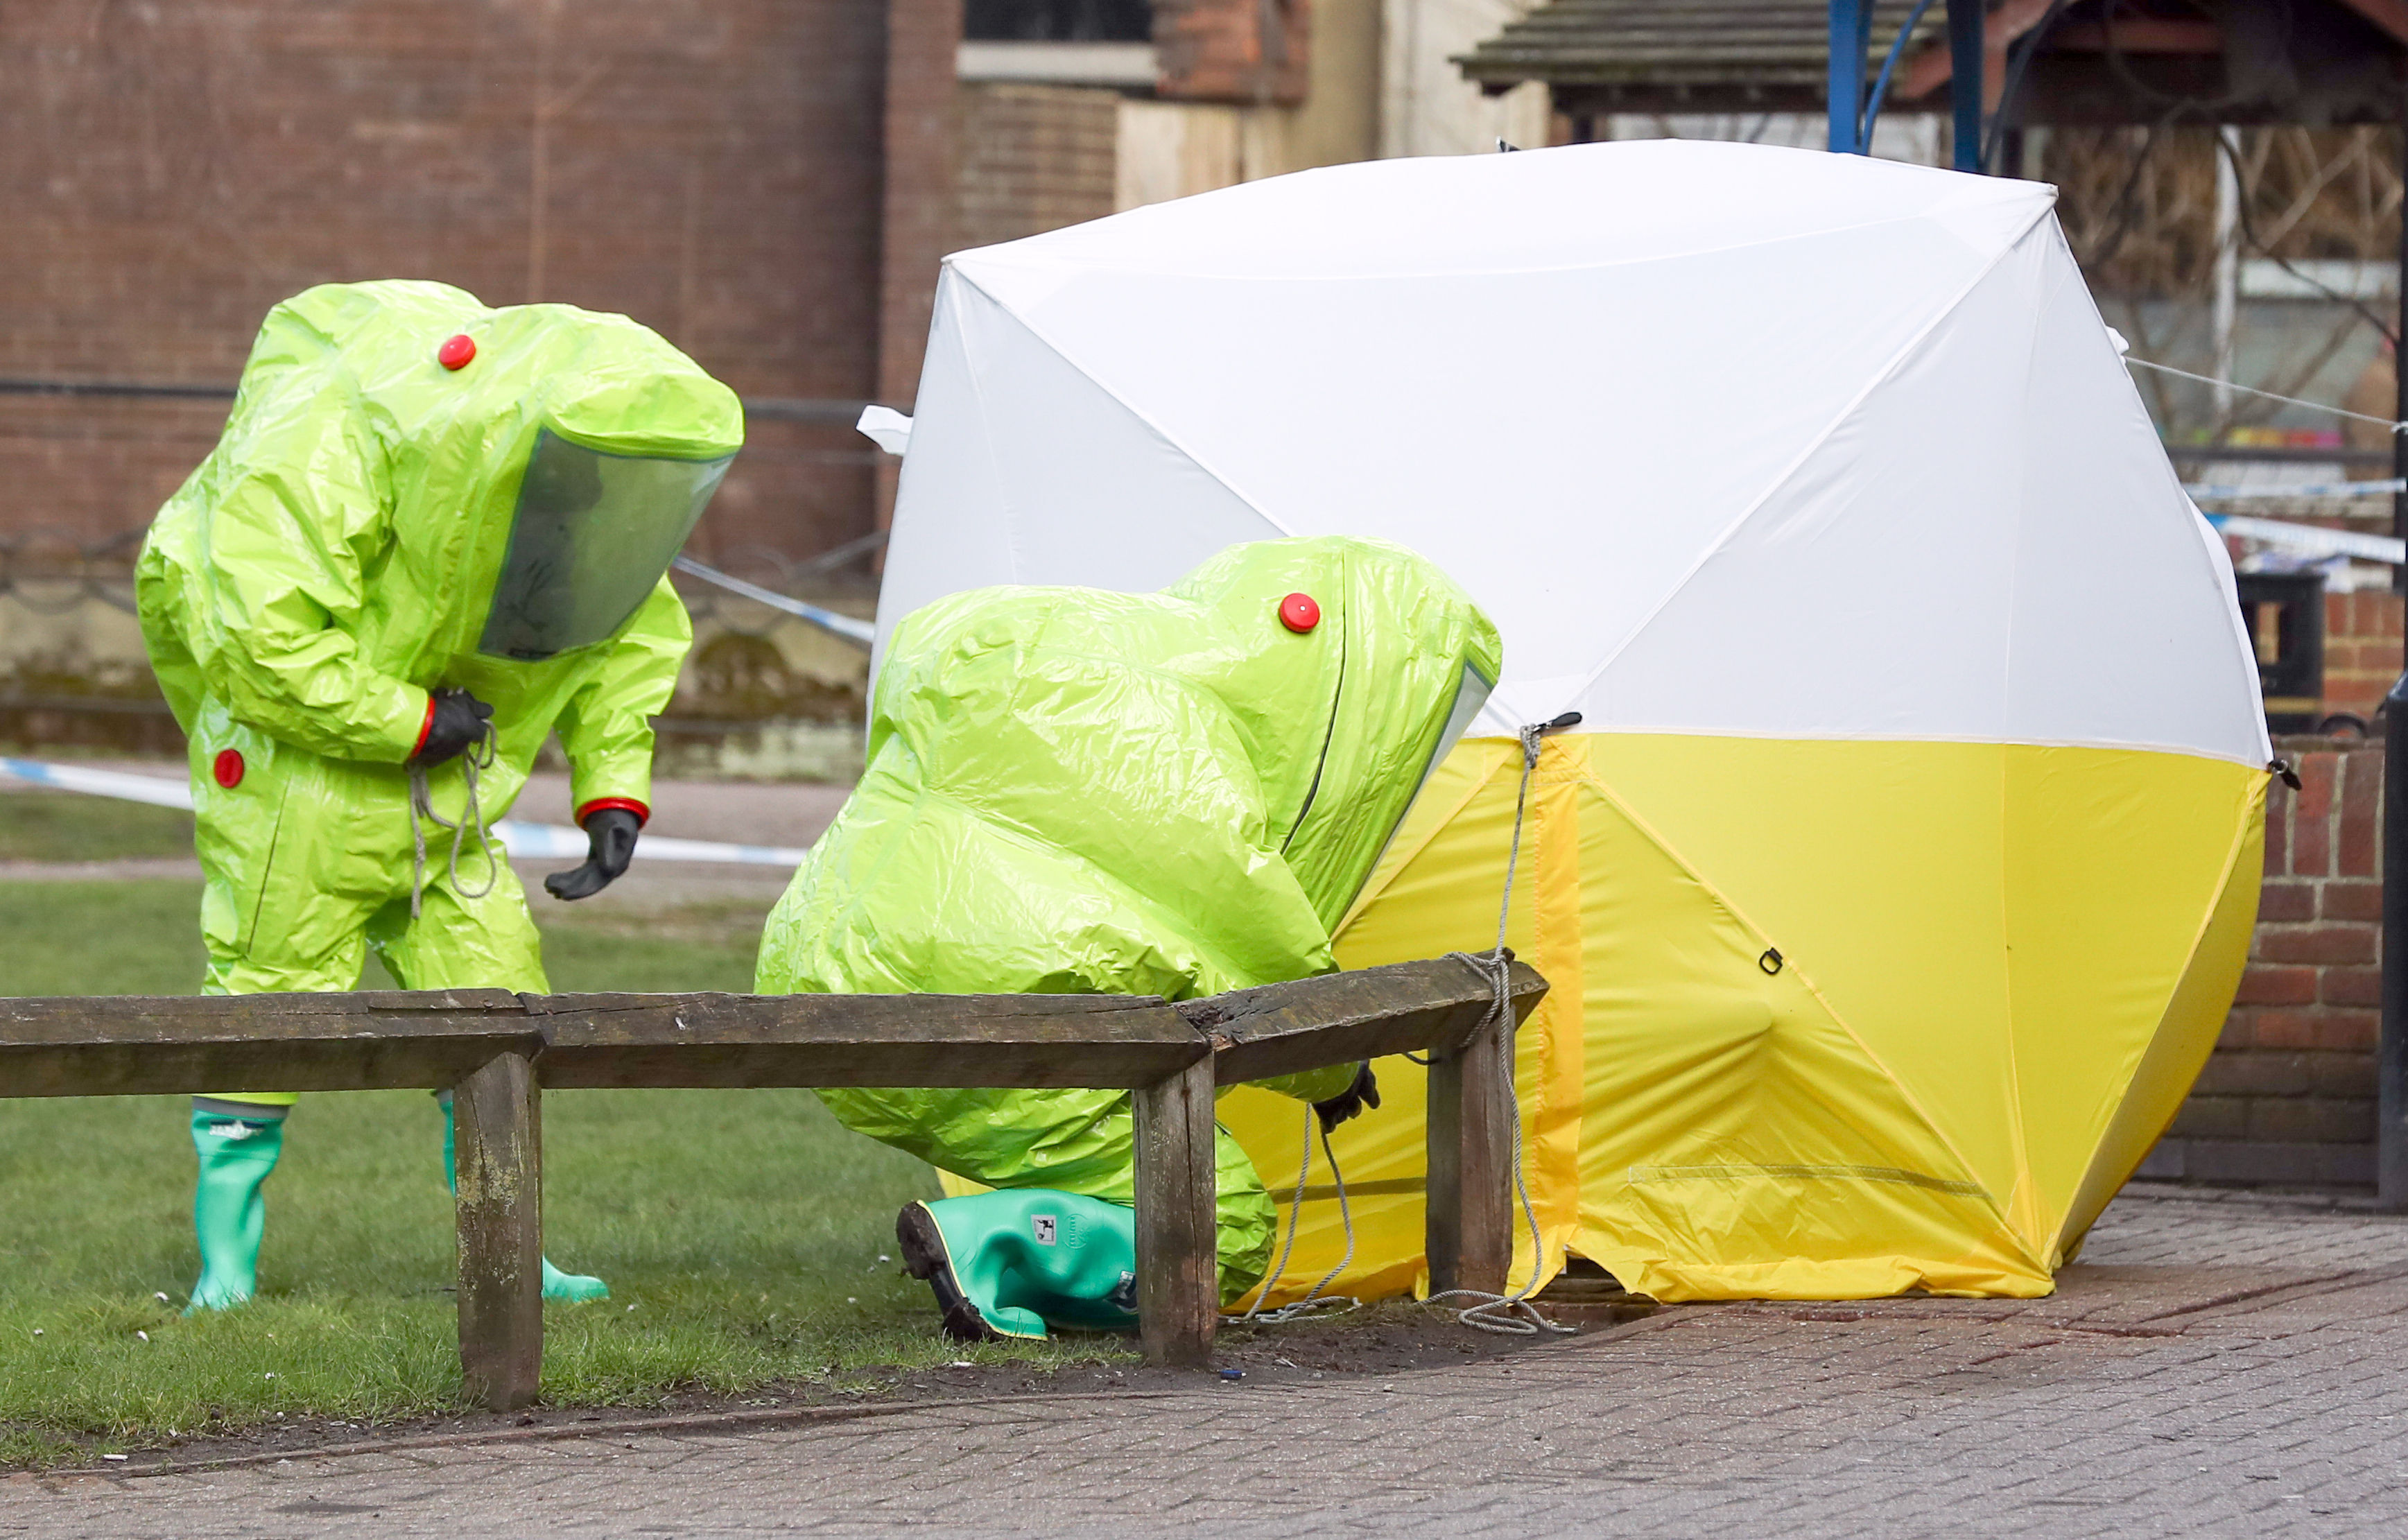 An extensive investigation was launched into the nerve agent attack in Salisbury in March